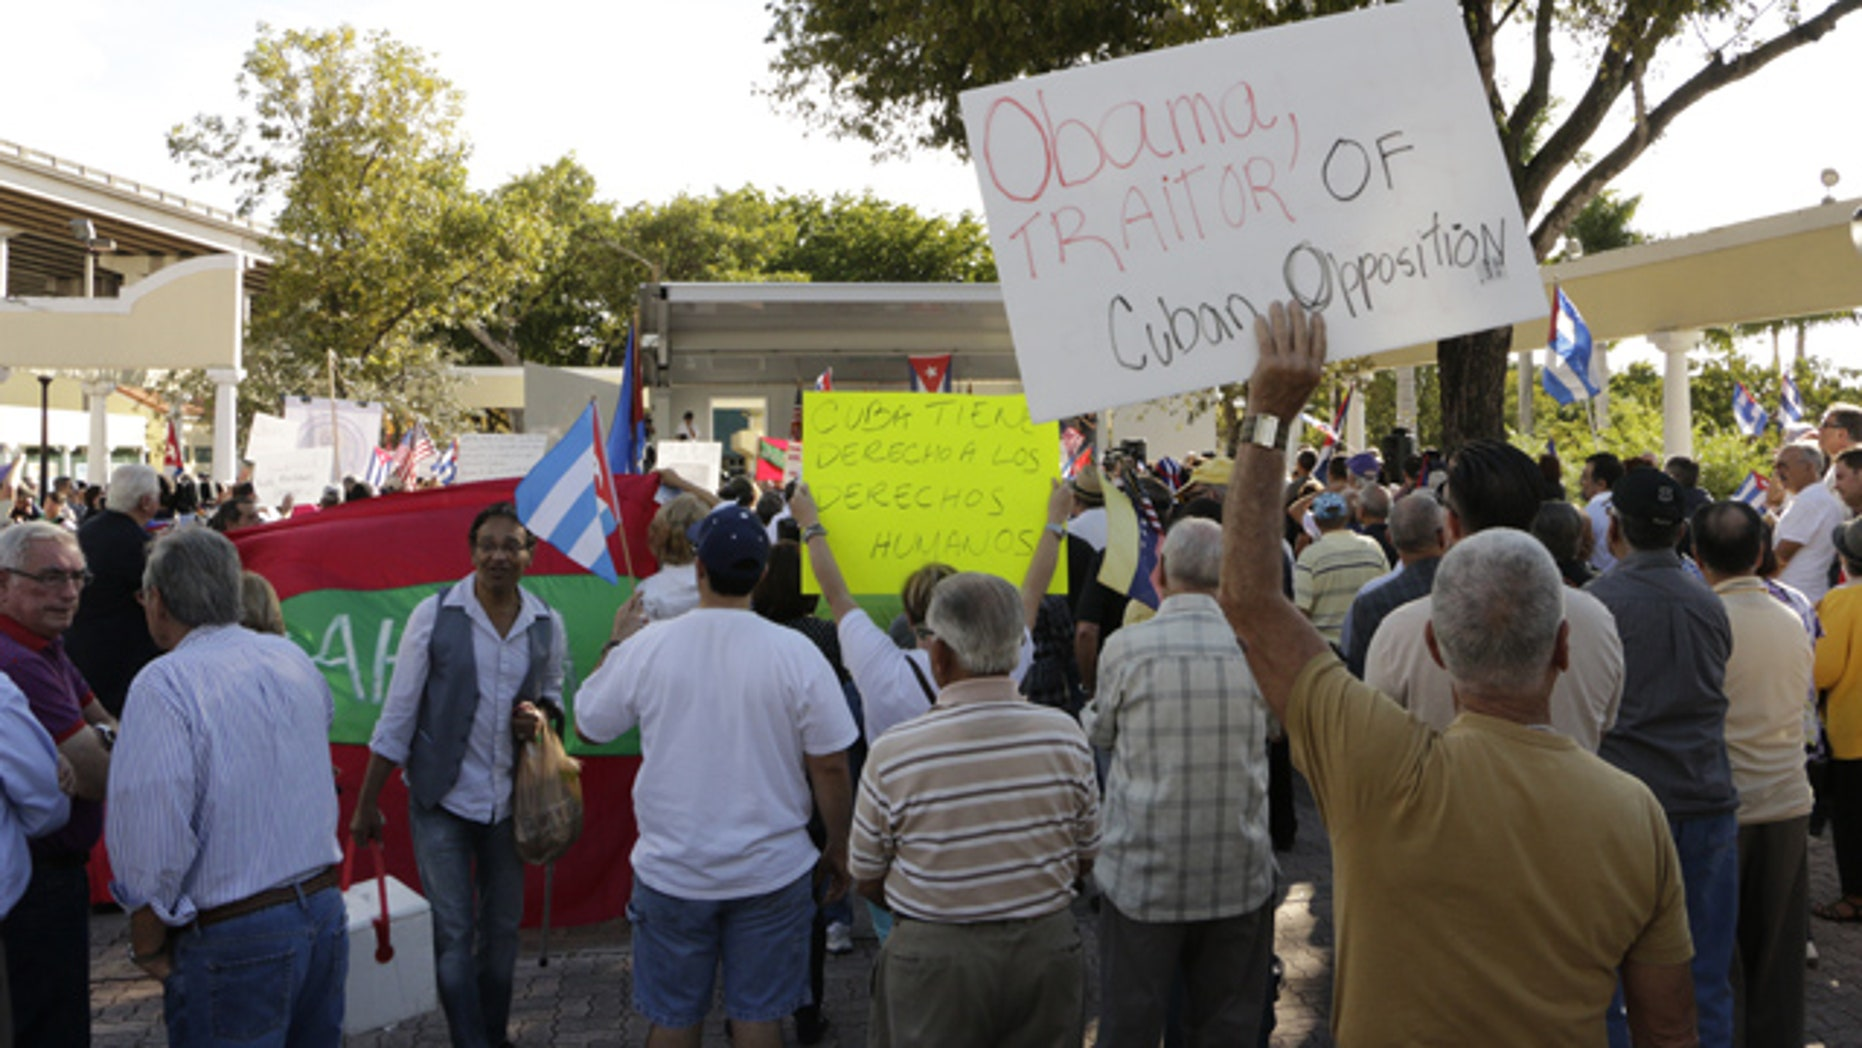 Dec. 20, 2014: More than 200 Cuban-Americans protest President Barack Obama's plan to normalize relations with Cuba in Miami. Many said they felt betrayed by the plan. (AP Photo/Rachel La Corte)